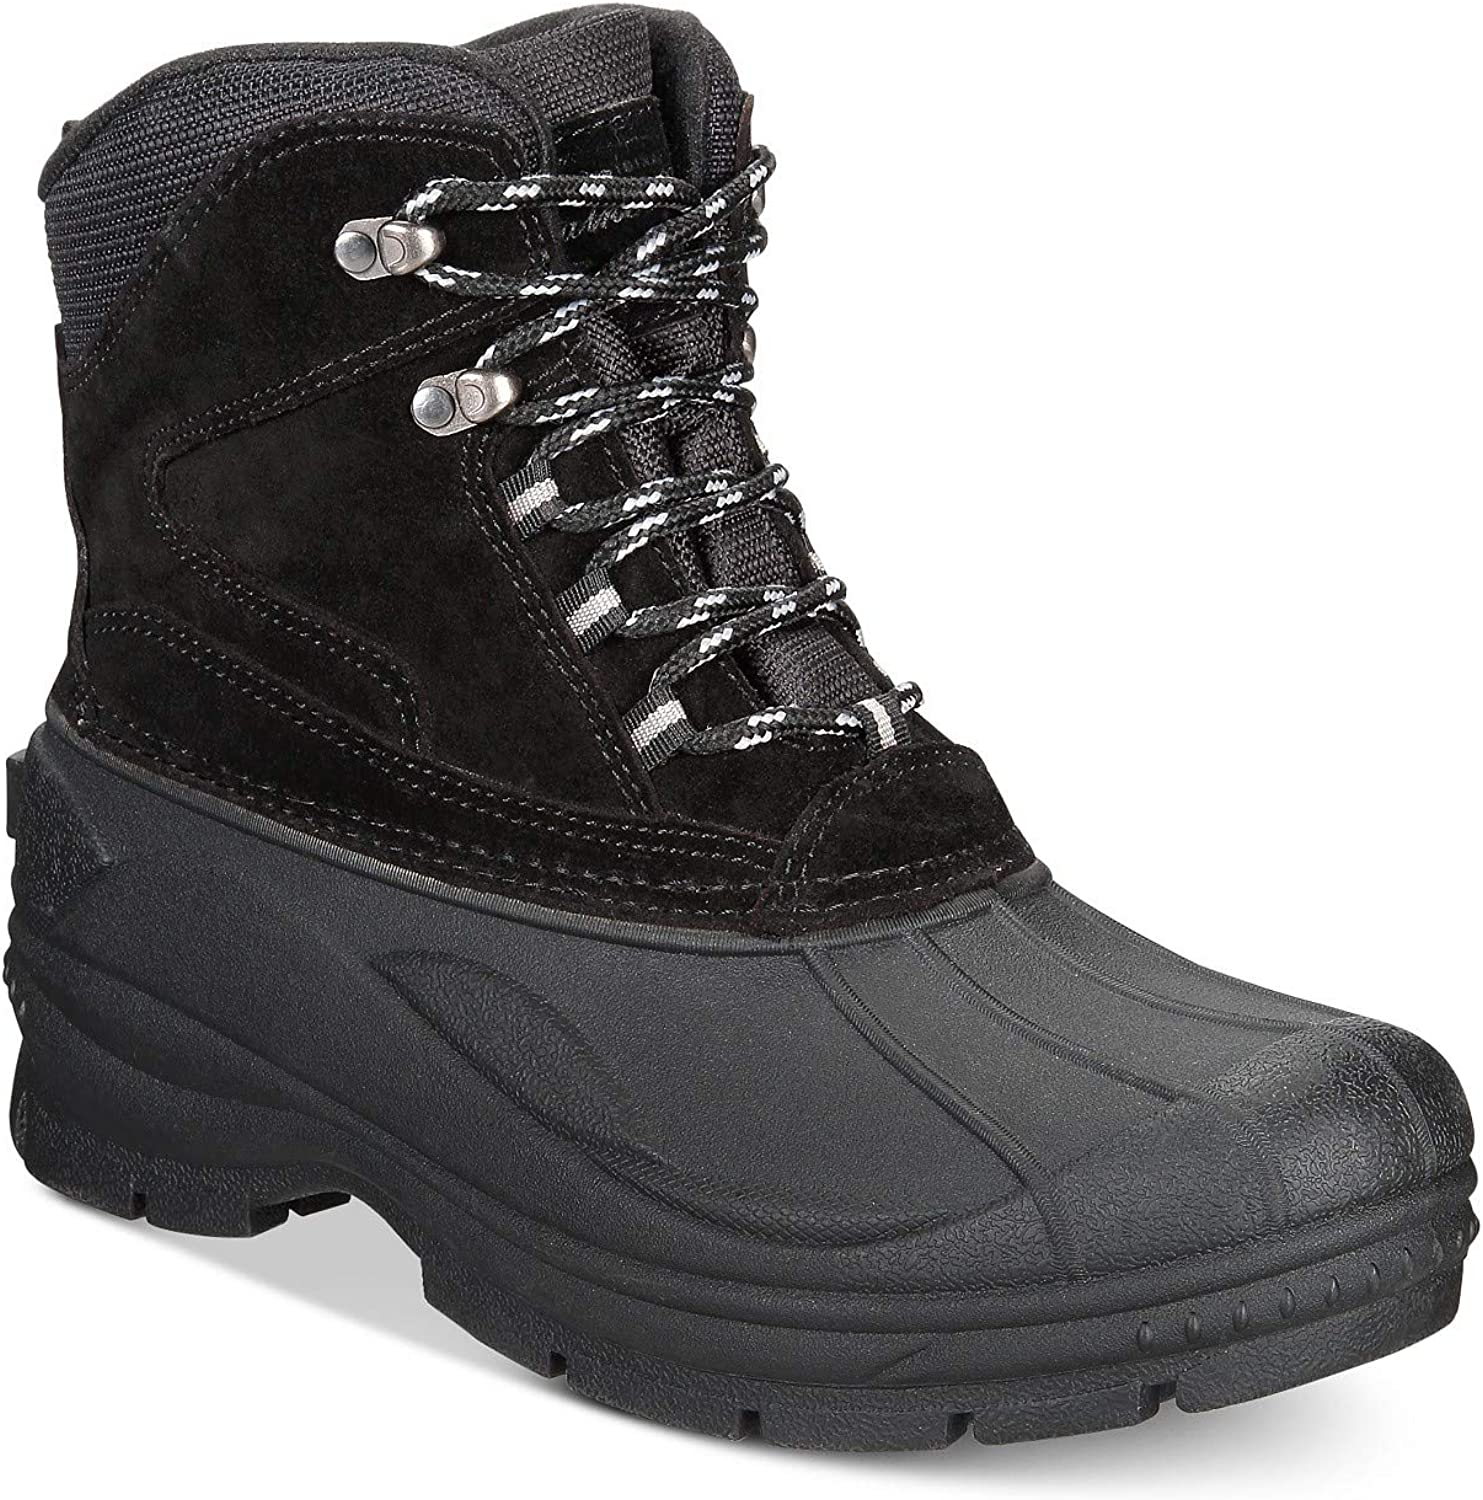 Weatherproof Mens Jake Leather Cap Toe Mid-Calf Cold Weather Boots